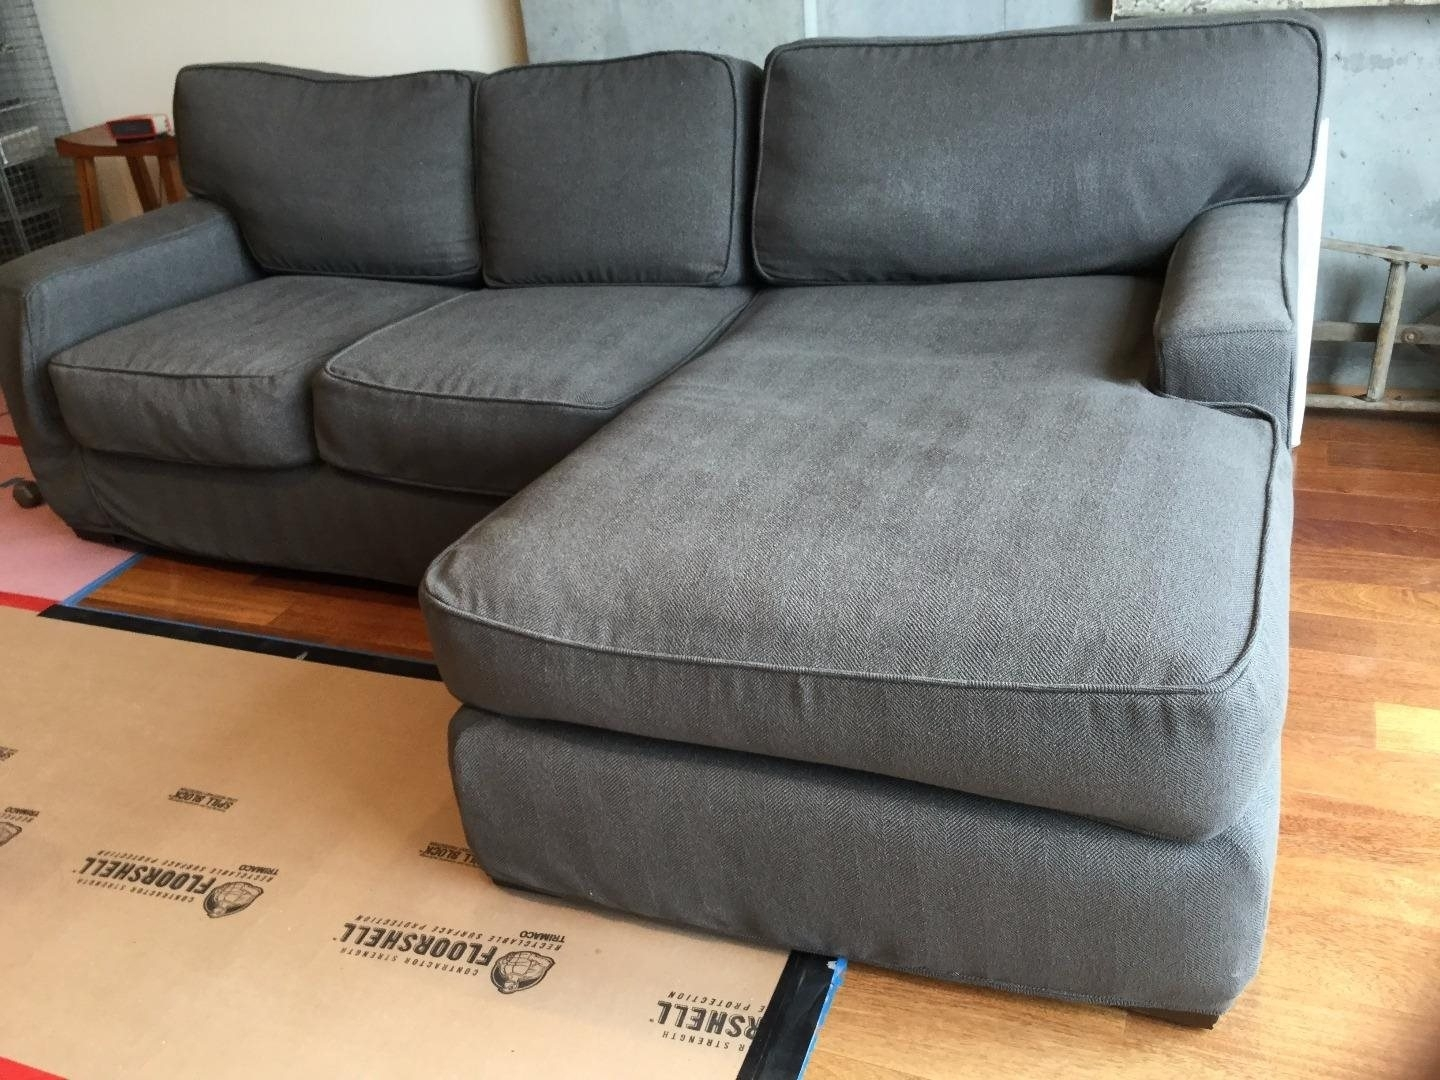 Quatrine Upholstered Sectional Sofa: For Sale In San Francisco, Ca For Quatrine Sectional Sofas (Image 7 of 10)